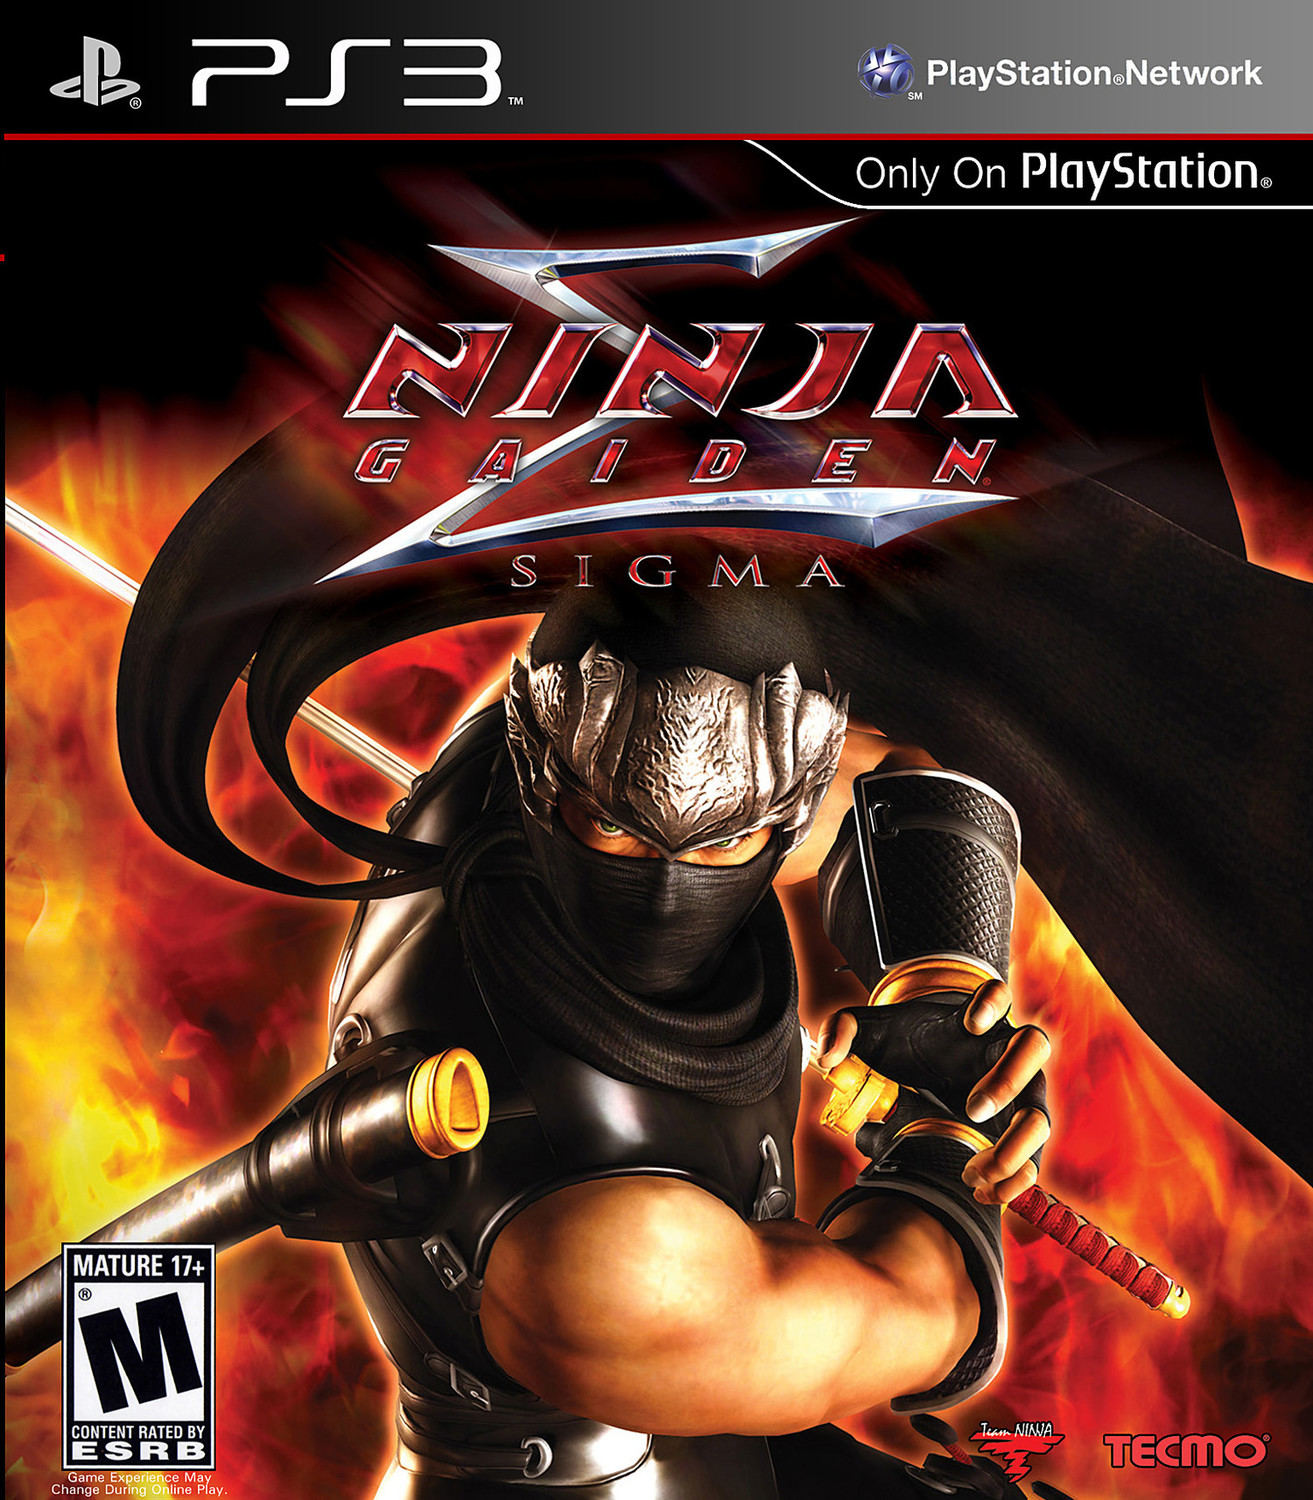 Ninja Gaiden Sigma Playstation 3 Ps3 Game